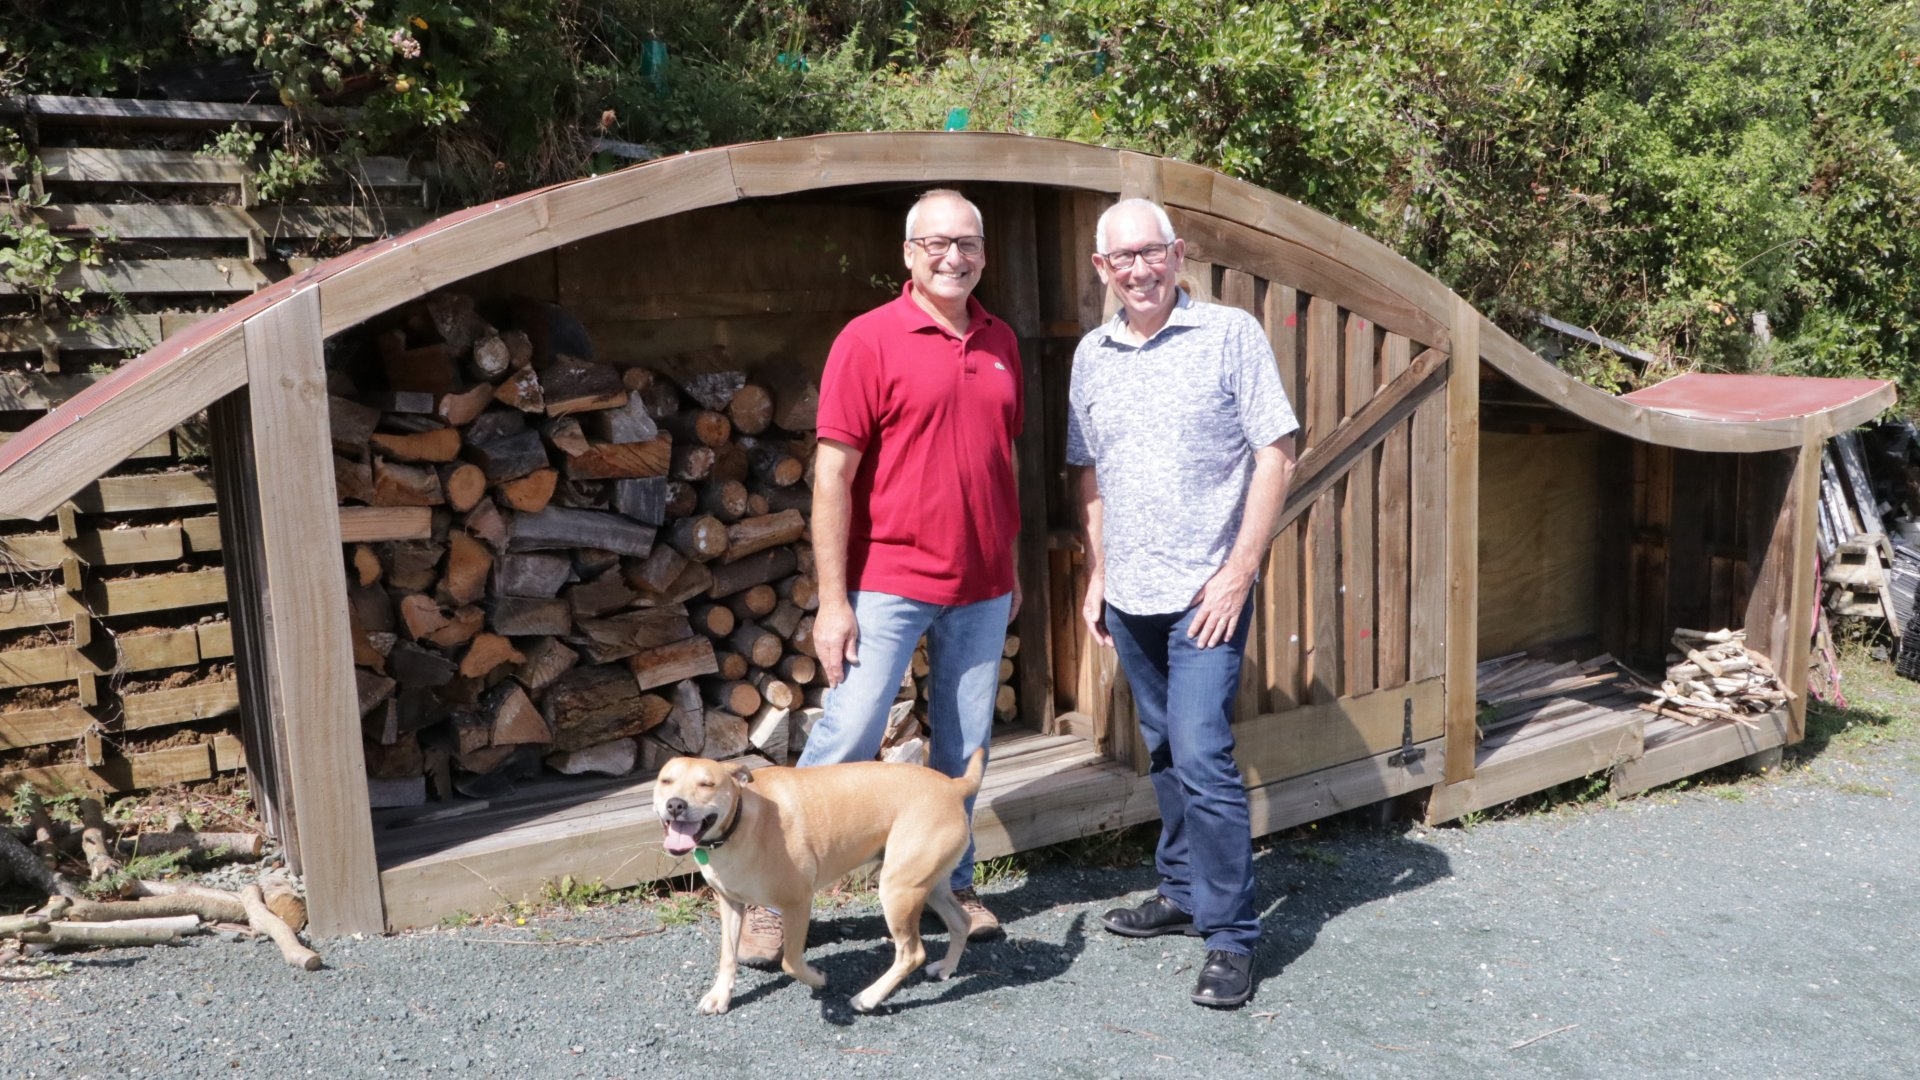 Best Little Woodshed winner Avner Nahmias with Councillor Brian McGurk